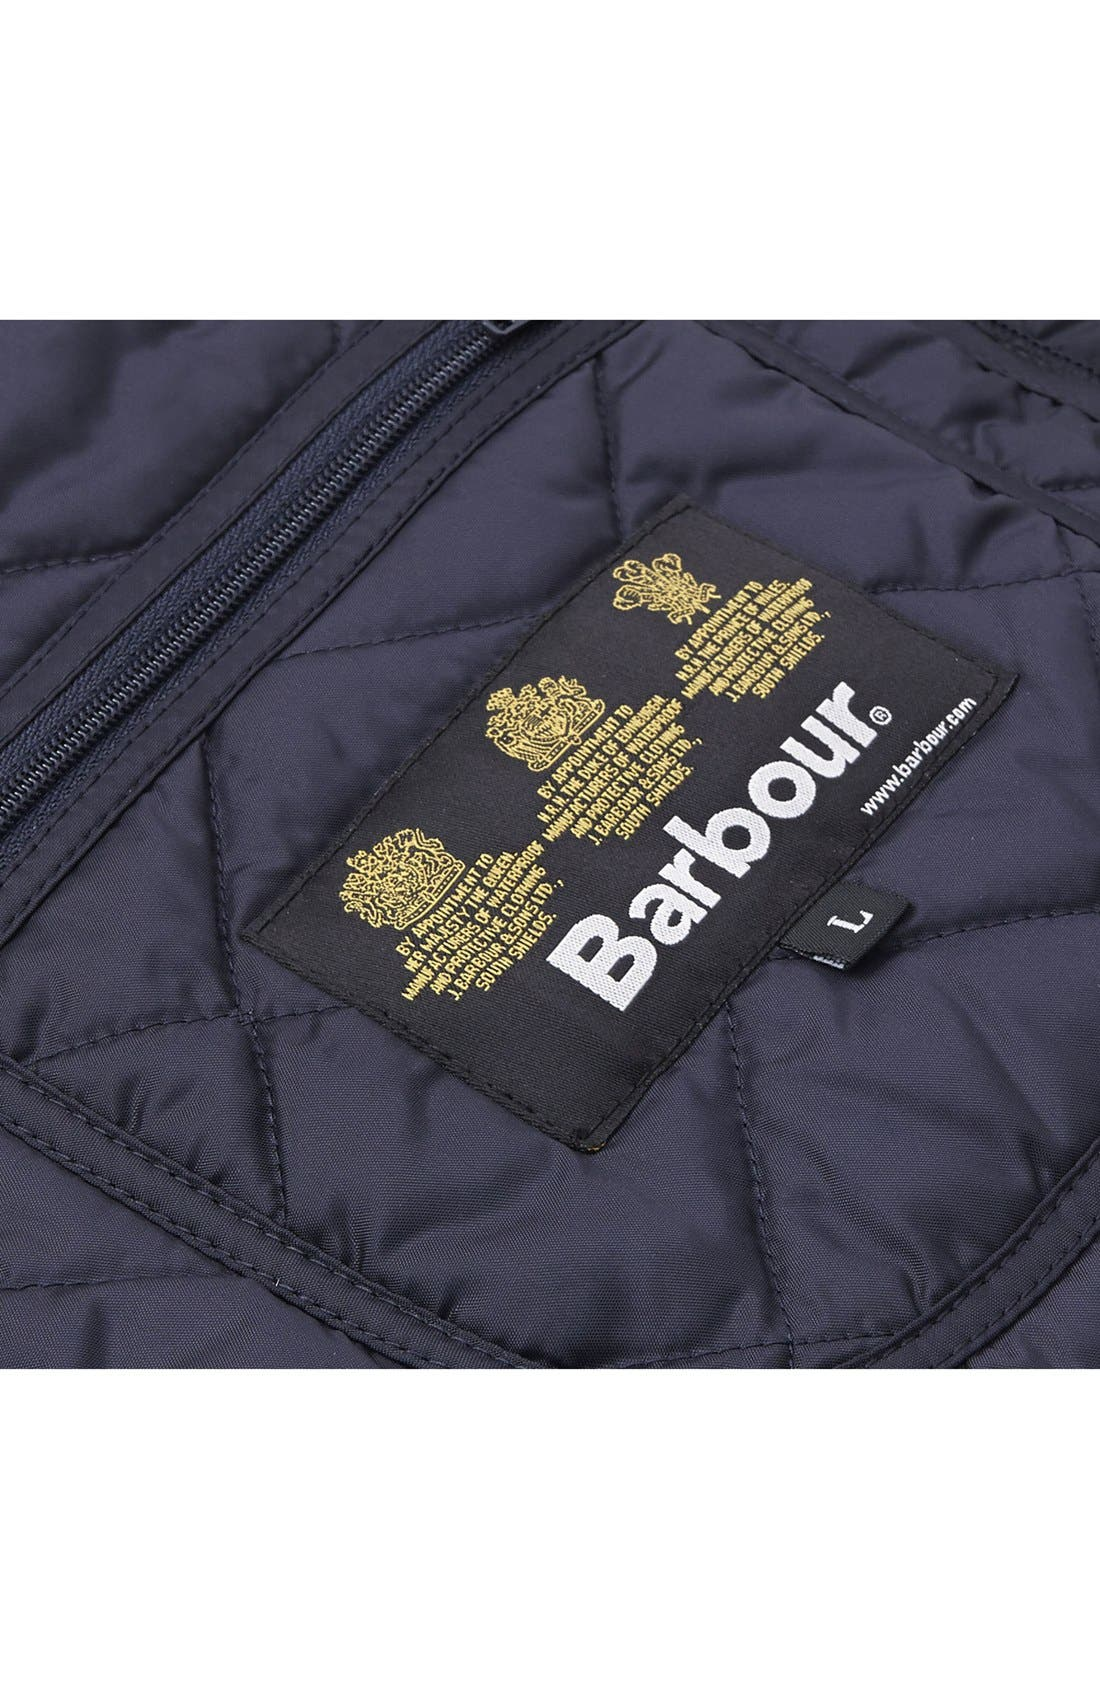 'Tinford' Regular Fit Quilted Jacket,                             Alternate thumbnail 8, color,                             Navy